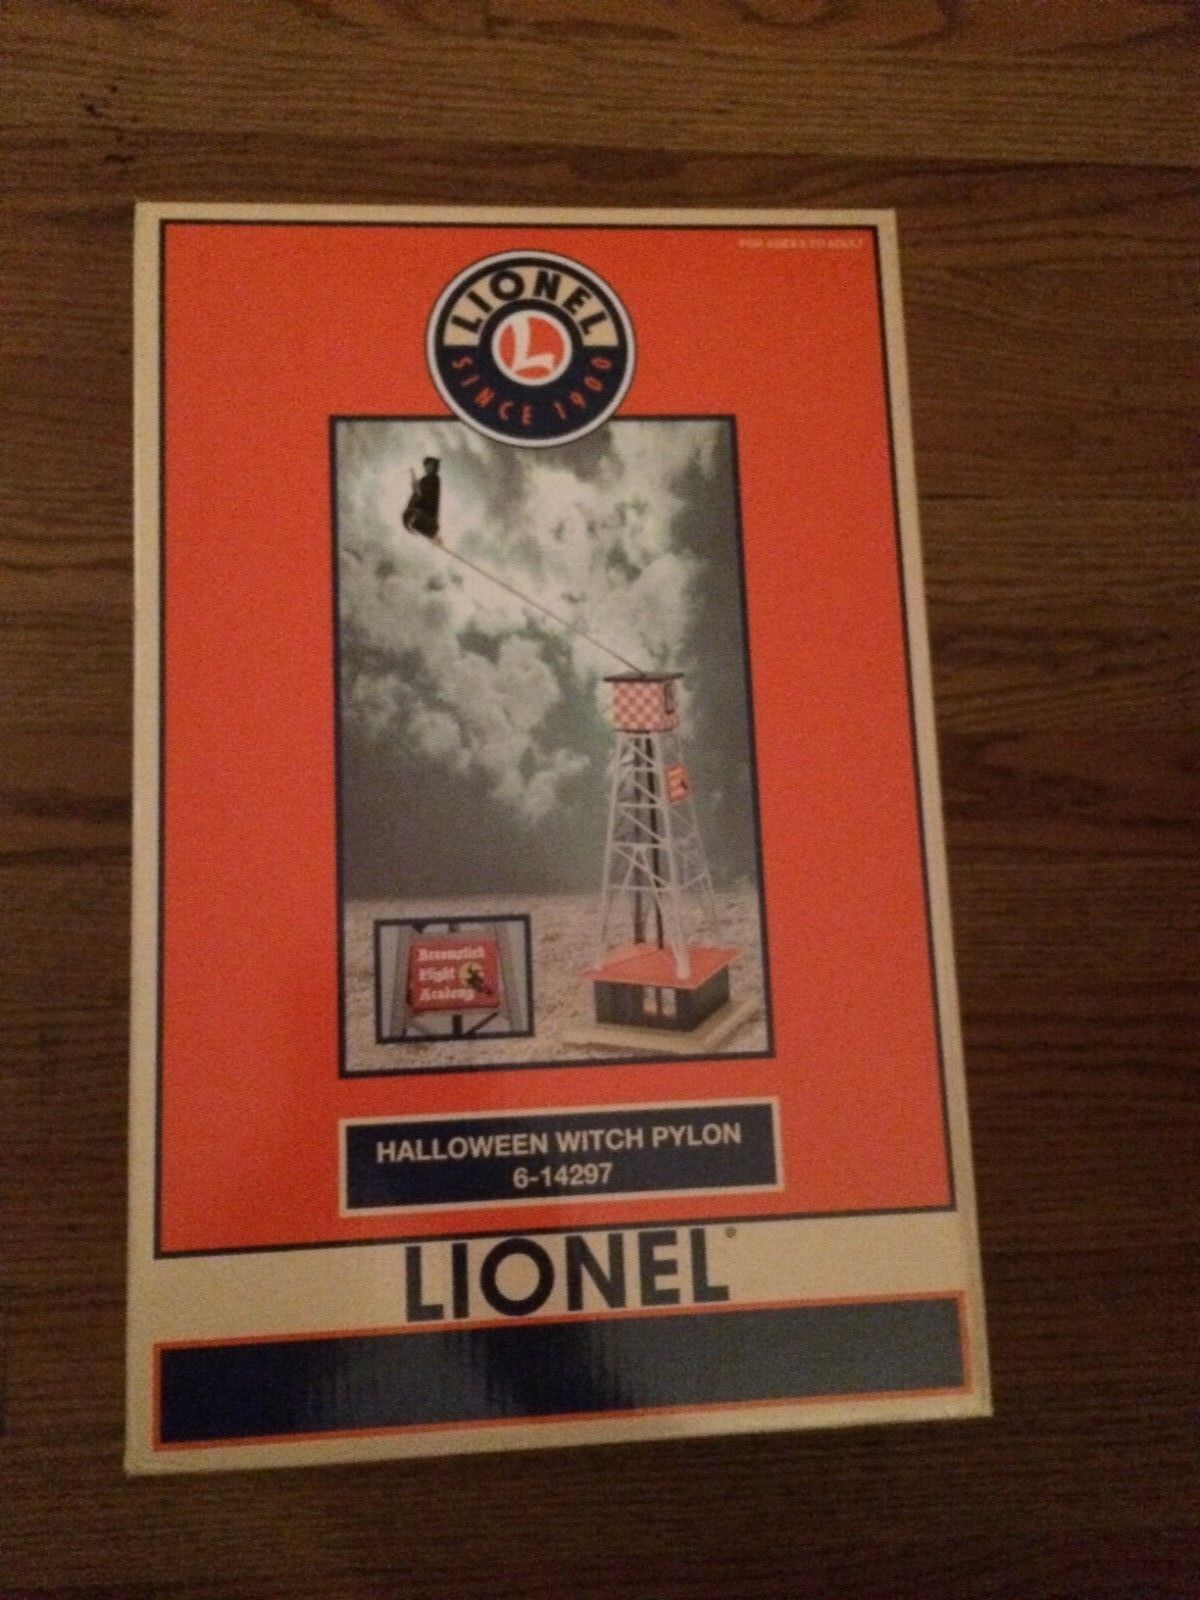 Lionel 14297 Halloween Witches Pylon New in Box